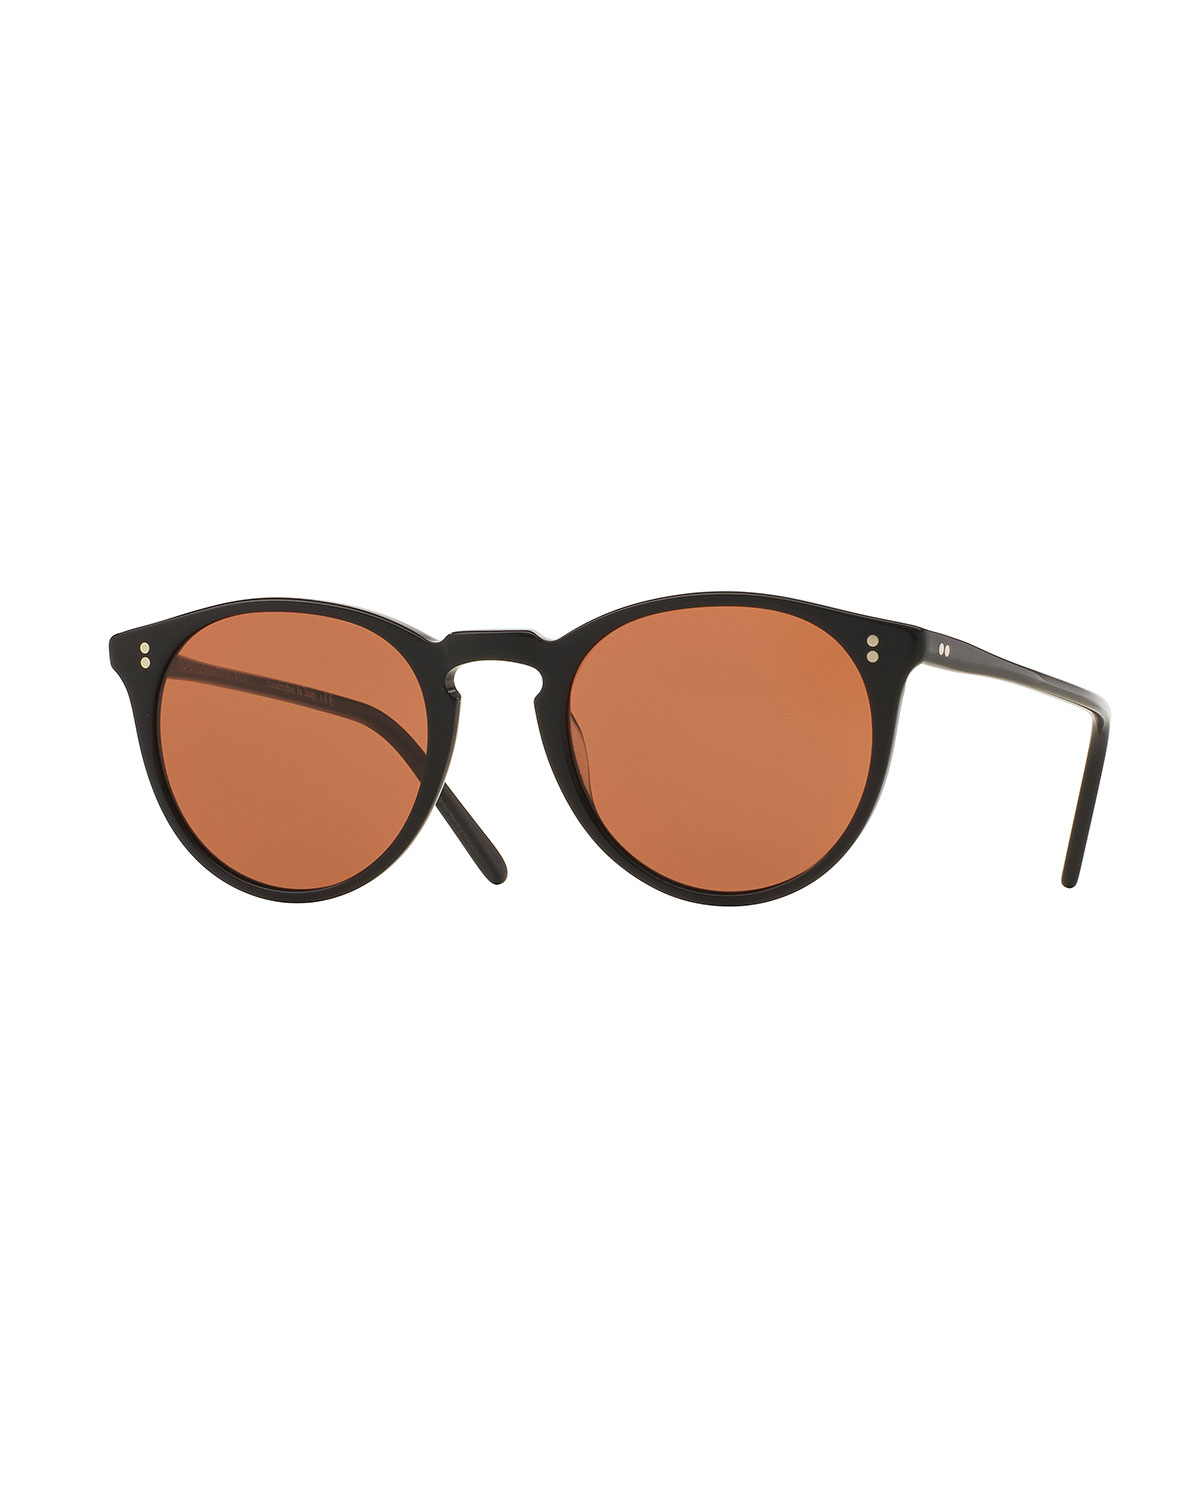 1666113896 Oliver Peoples hot sale b1f4d 1ef7d  OMalley NYC Peaked Round Sunglasses